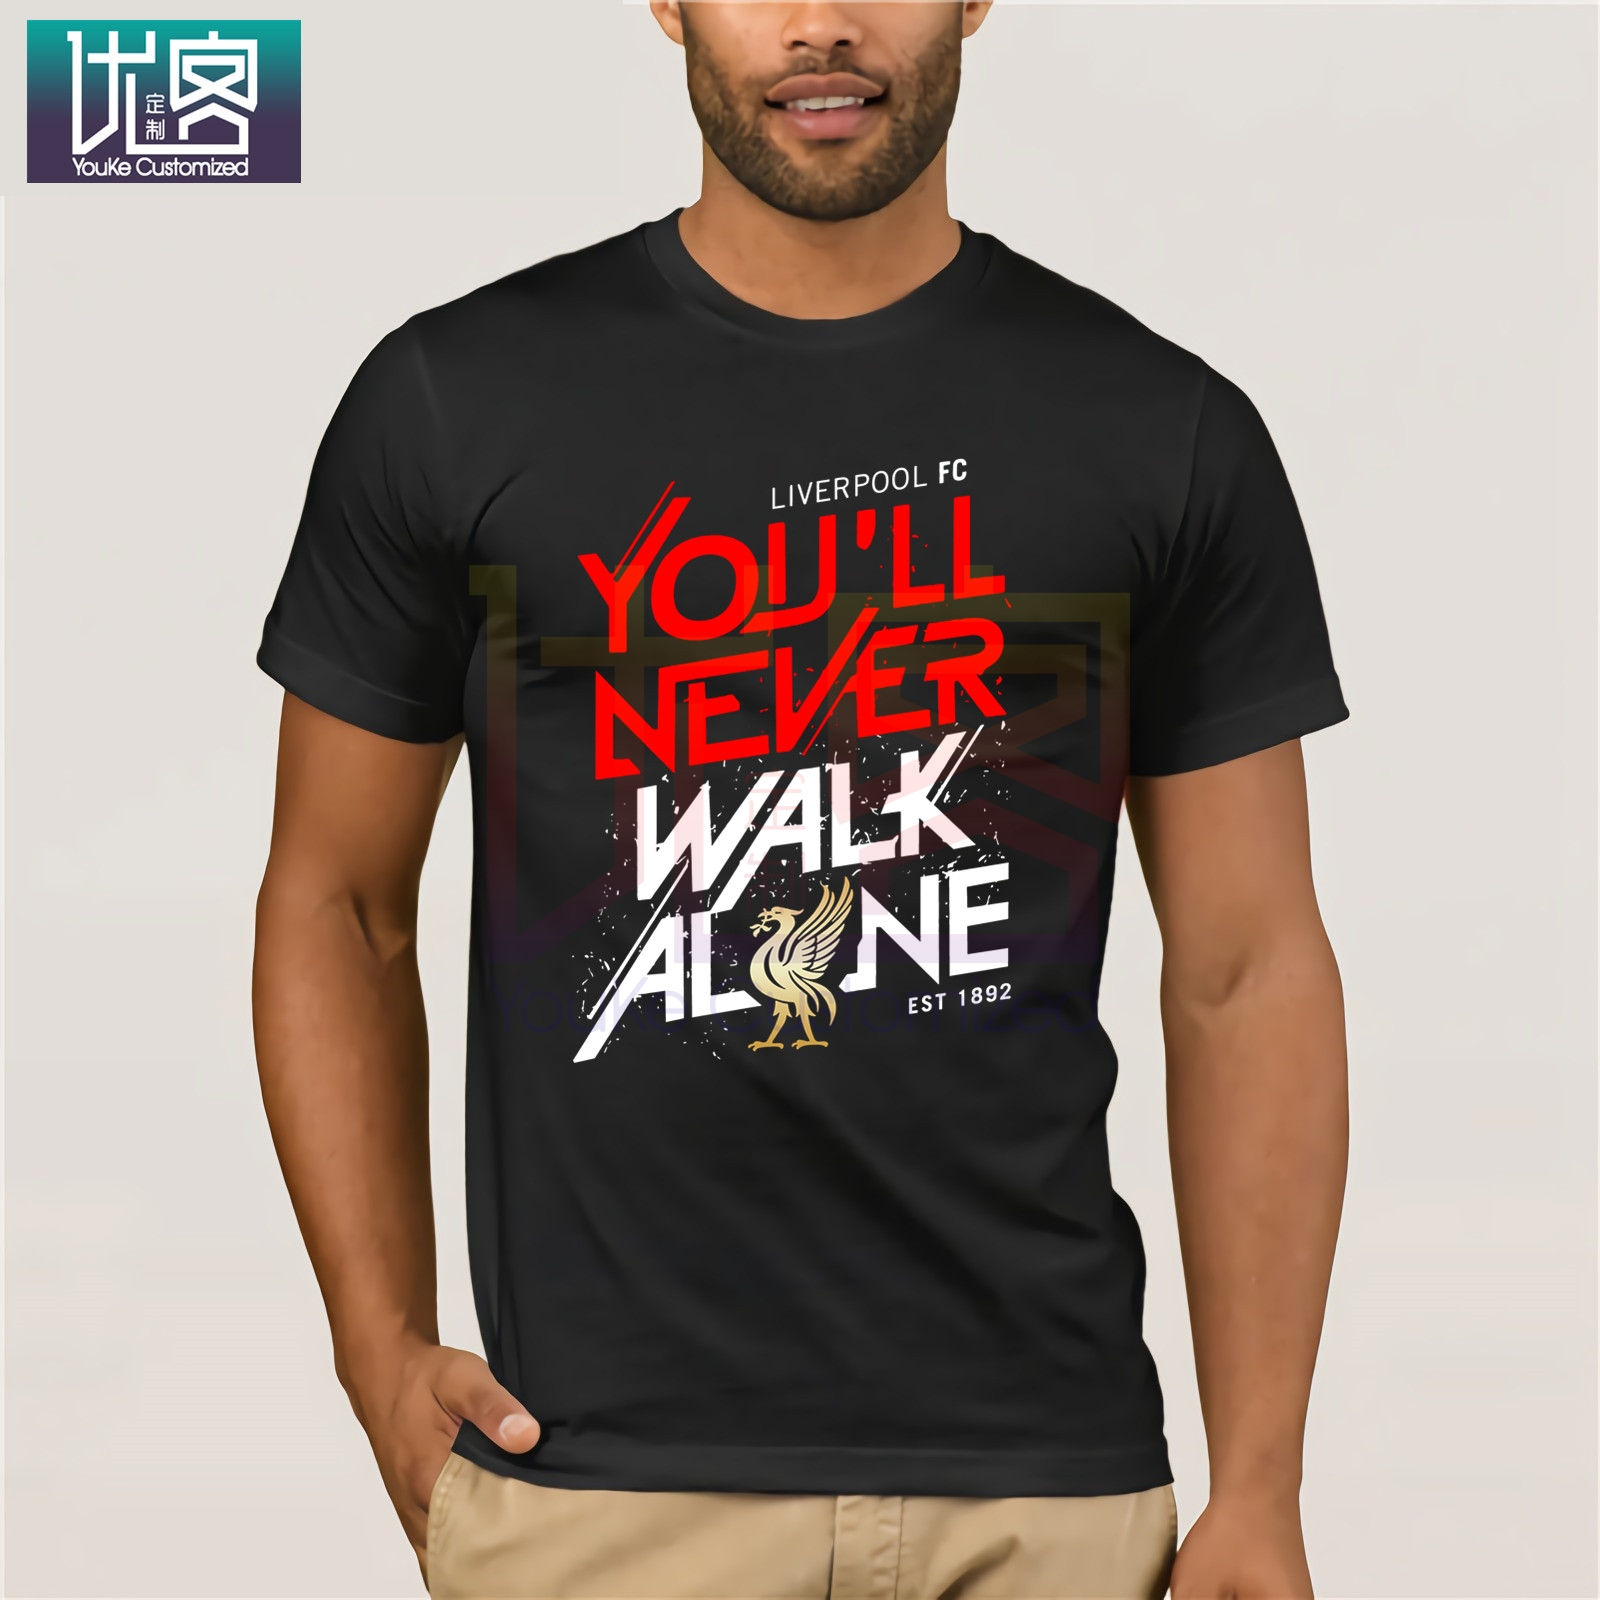 Liverpool You'll Never Walk Alone T-Shirt Clothes Popular T-Shirt Crewneck 100% Cotton Tees Casual Short Sleeve Top